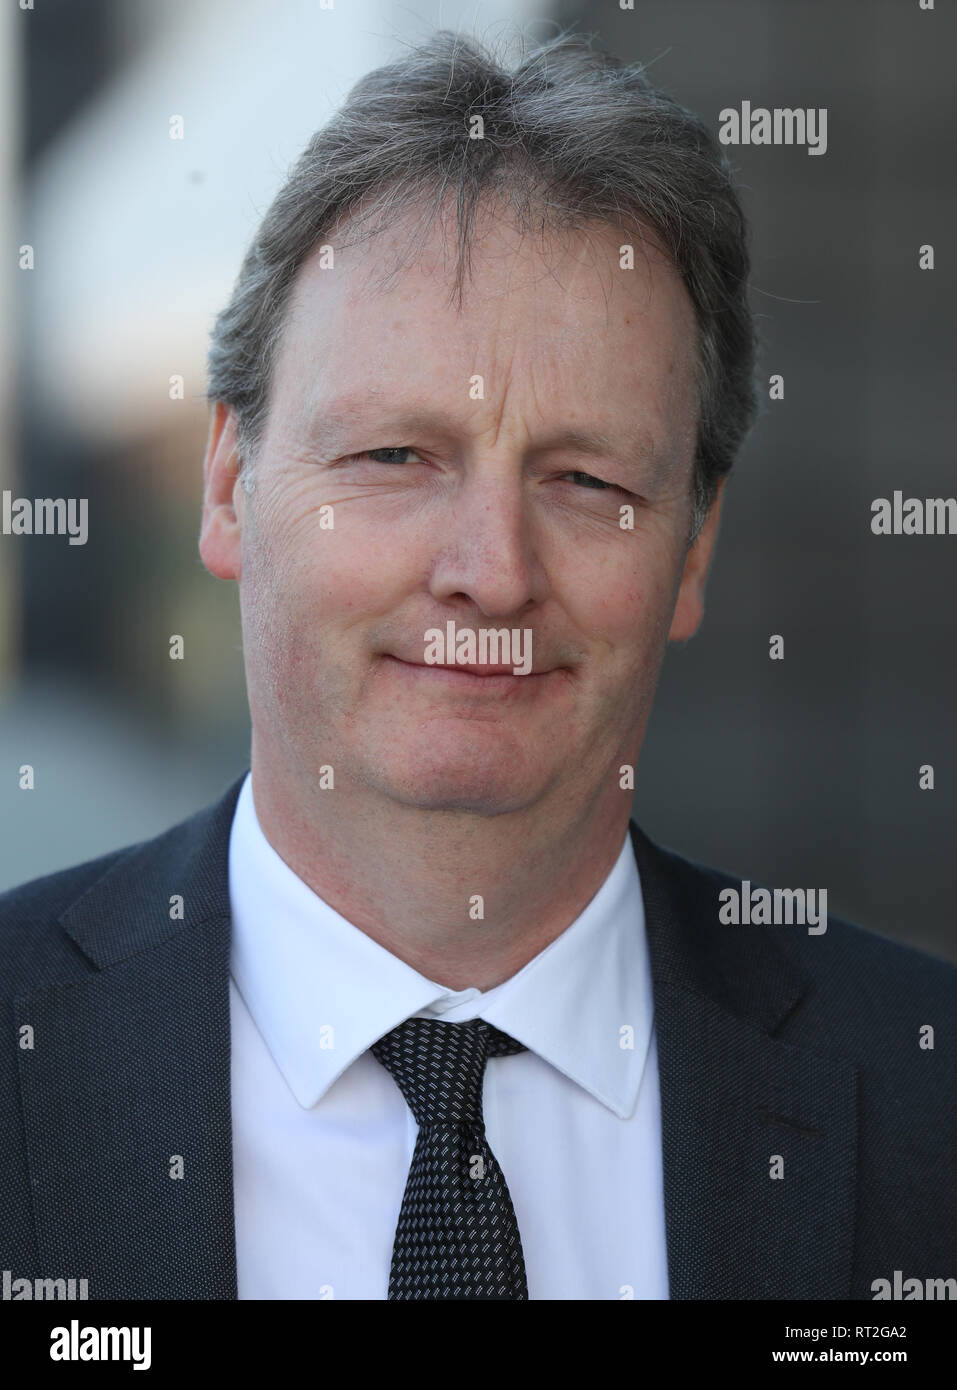 Andrew Gardner, chief executive of Ineos Forties Pipeline System (FPS) at INEOS Grangemouth headquarters after the company made an investment announcement. - Stock Image